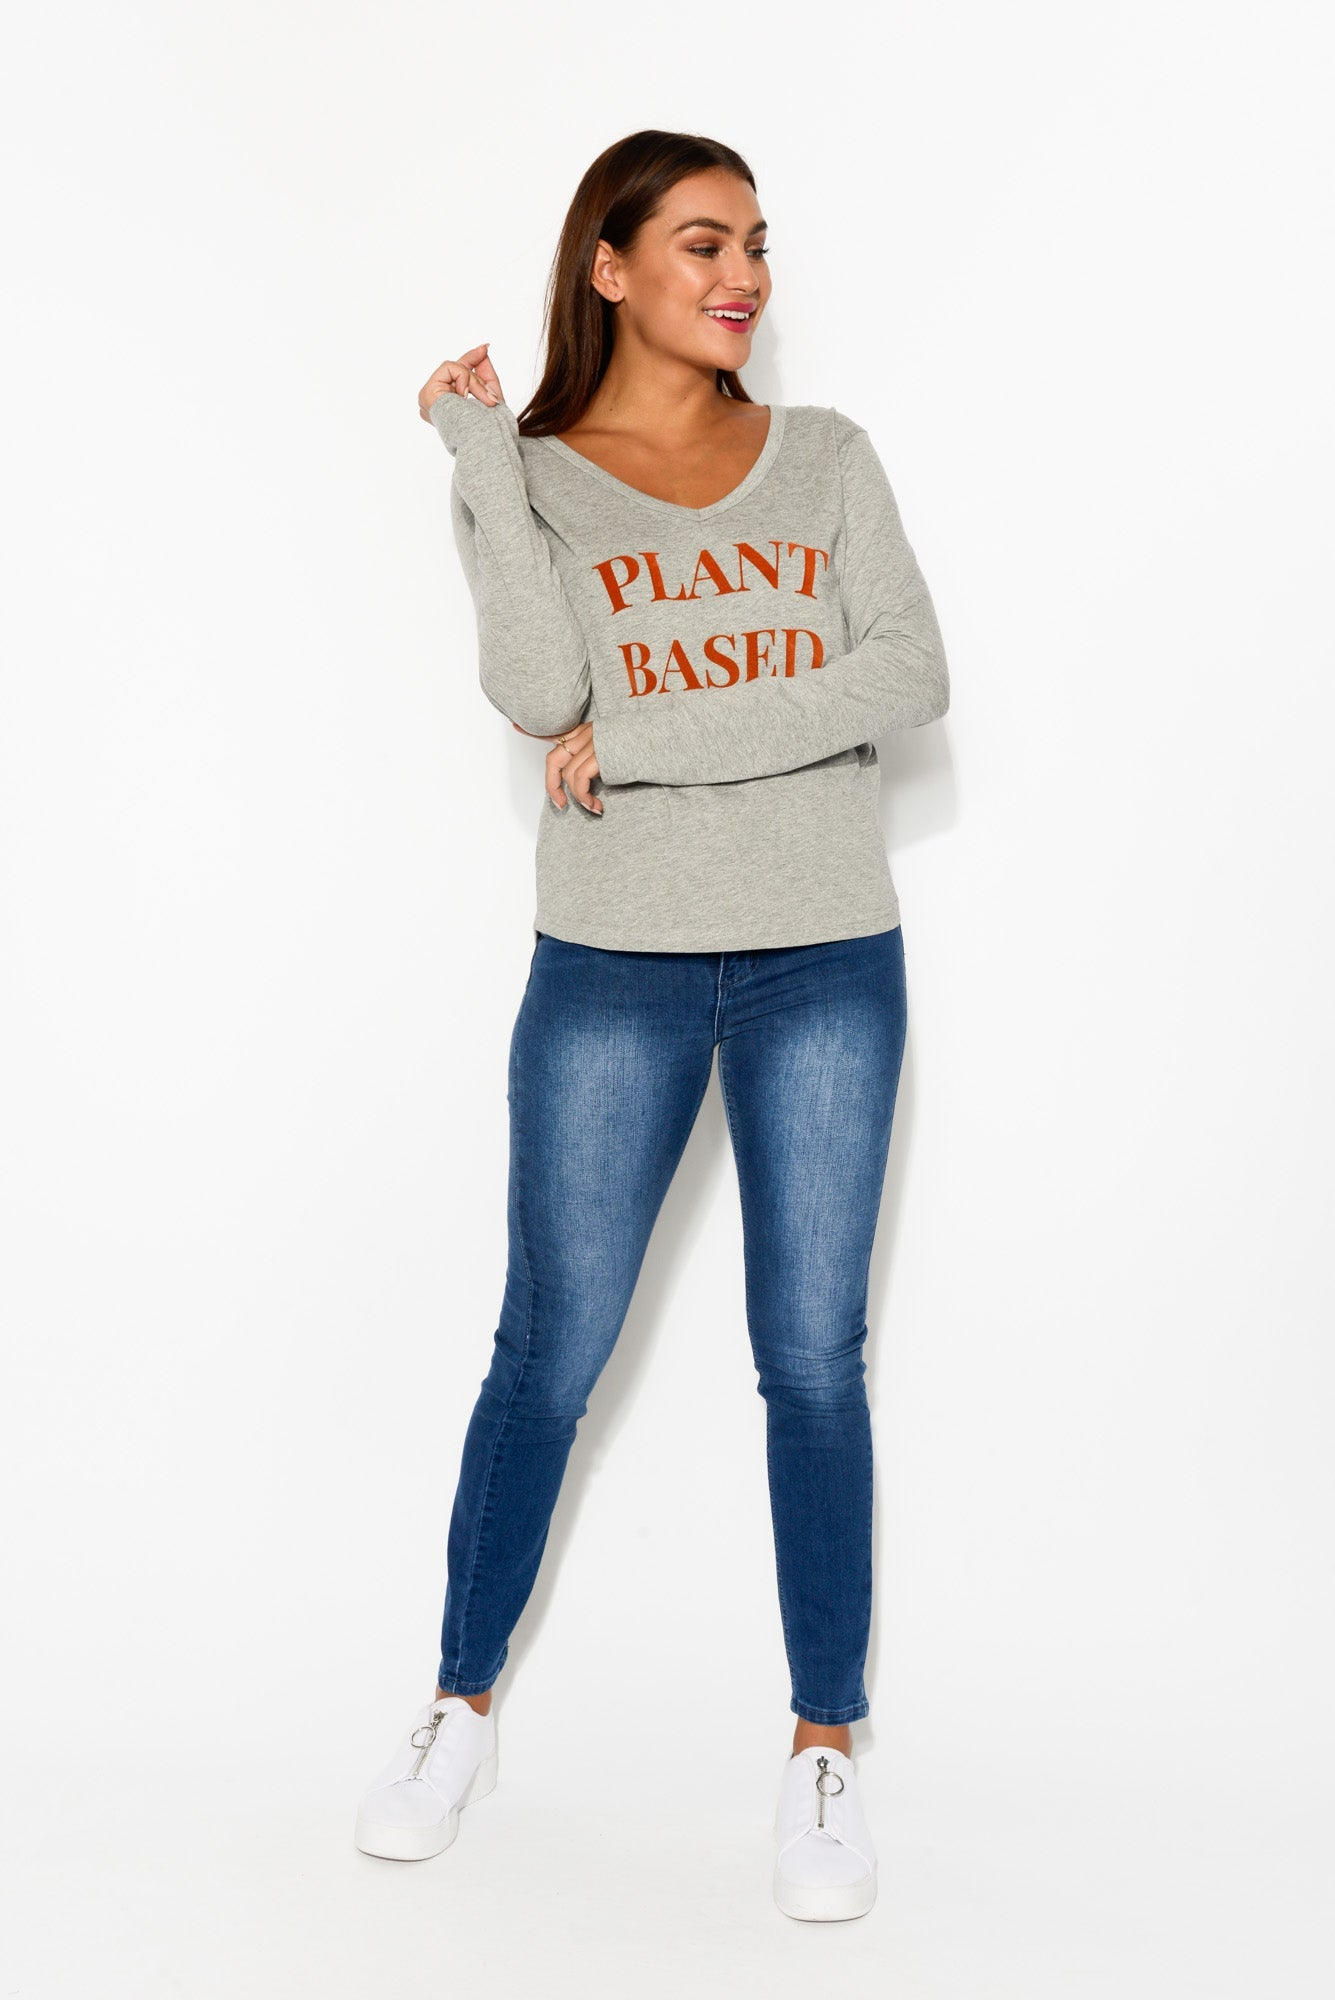 Grey Plant Based Long Sleeve Tee - Blue Bungalow